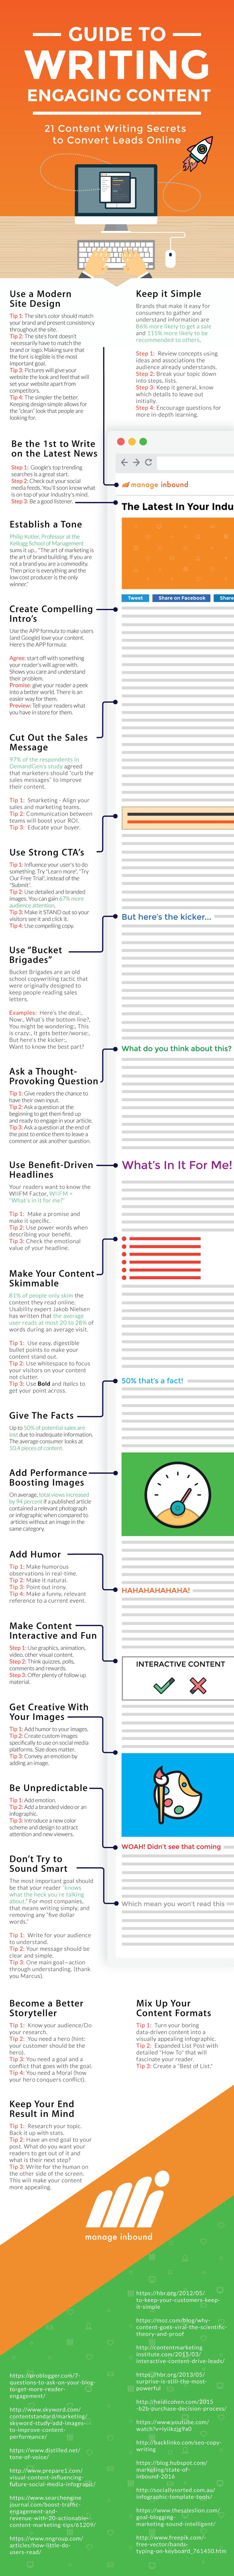 21 Actionable Tips To Make Your Content More Attractive [Infographic]